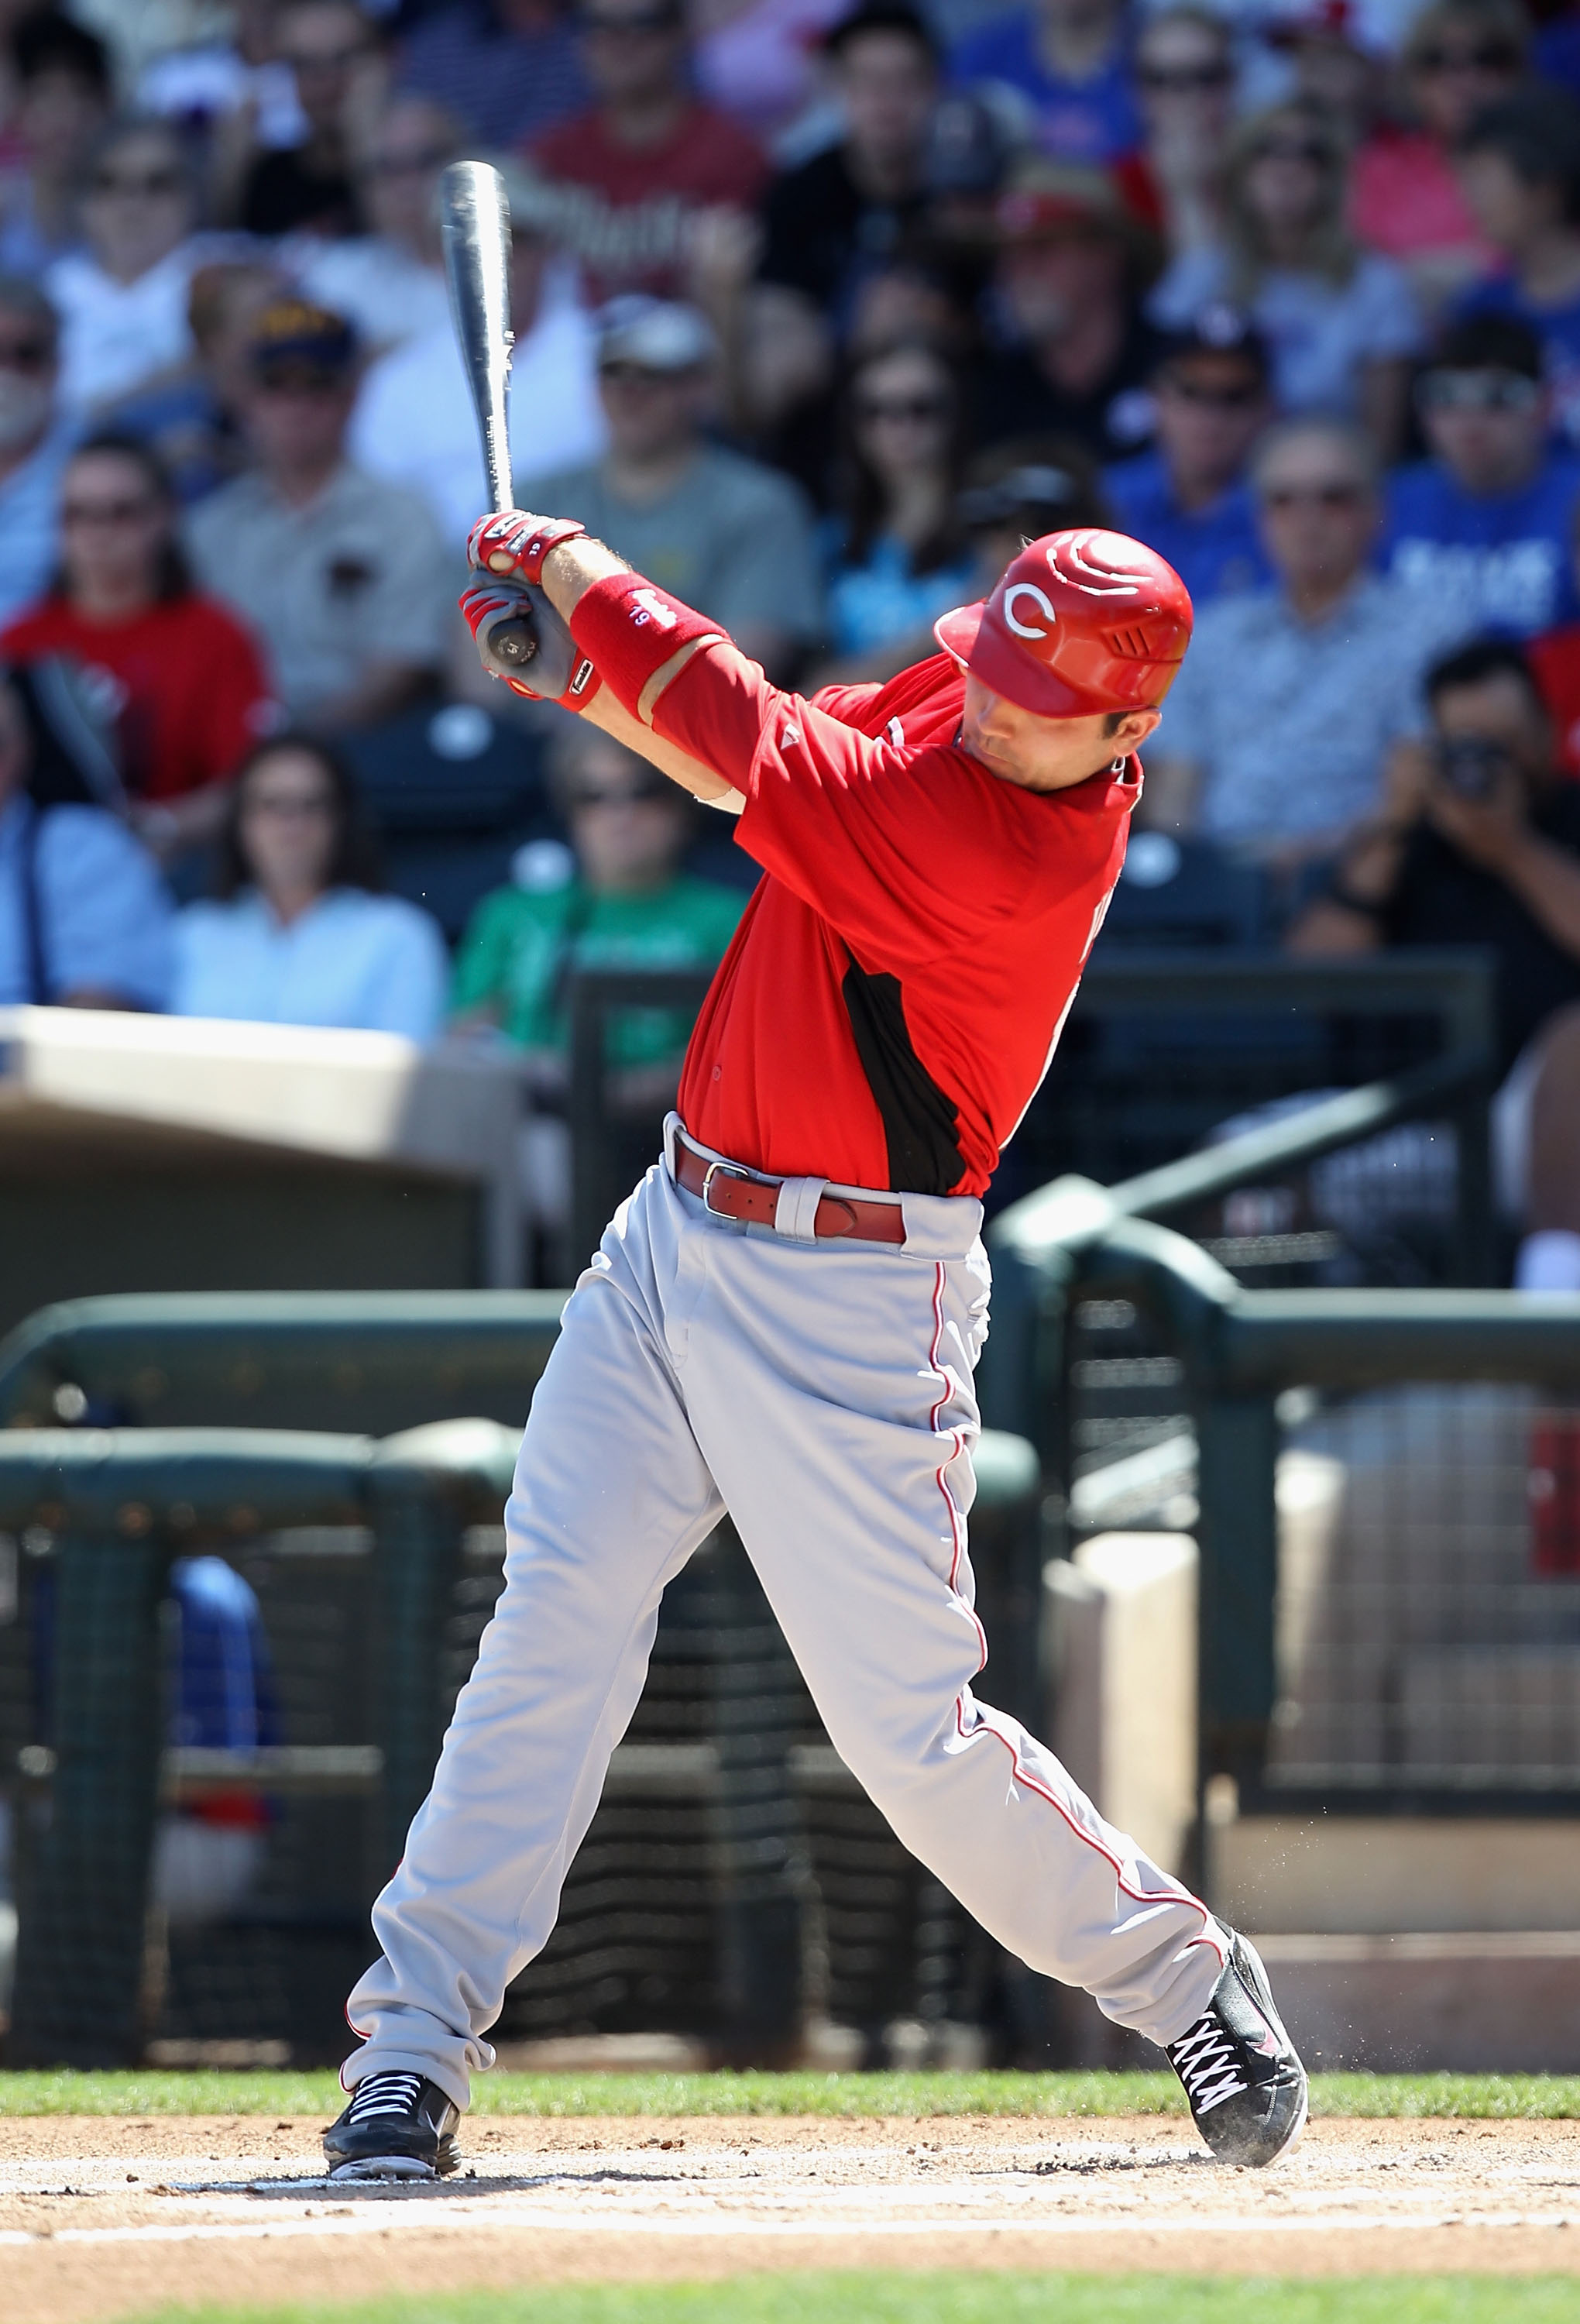 SURPRISE, AZ - MARCH 11:  Joey Votto #19 of the Cincinnati Reds hits a RBI single during the first inning of the spring training game against the Texas Rangers at Surprise Stadium on March 11, 2011 in Surprise, Arizona.  (Photo by Christian Petersen/Getty